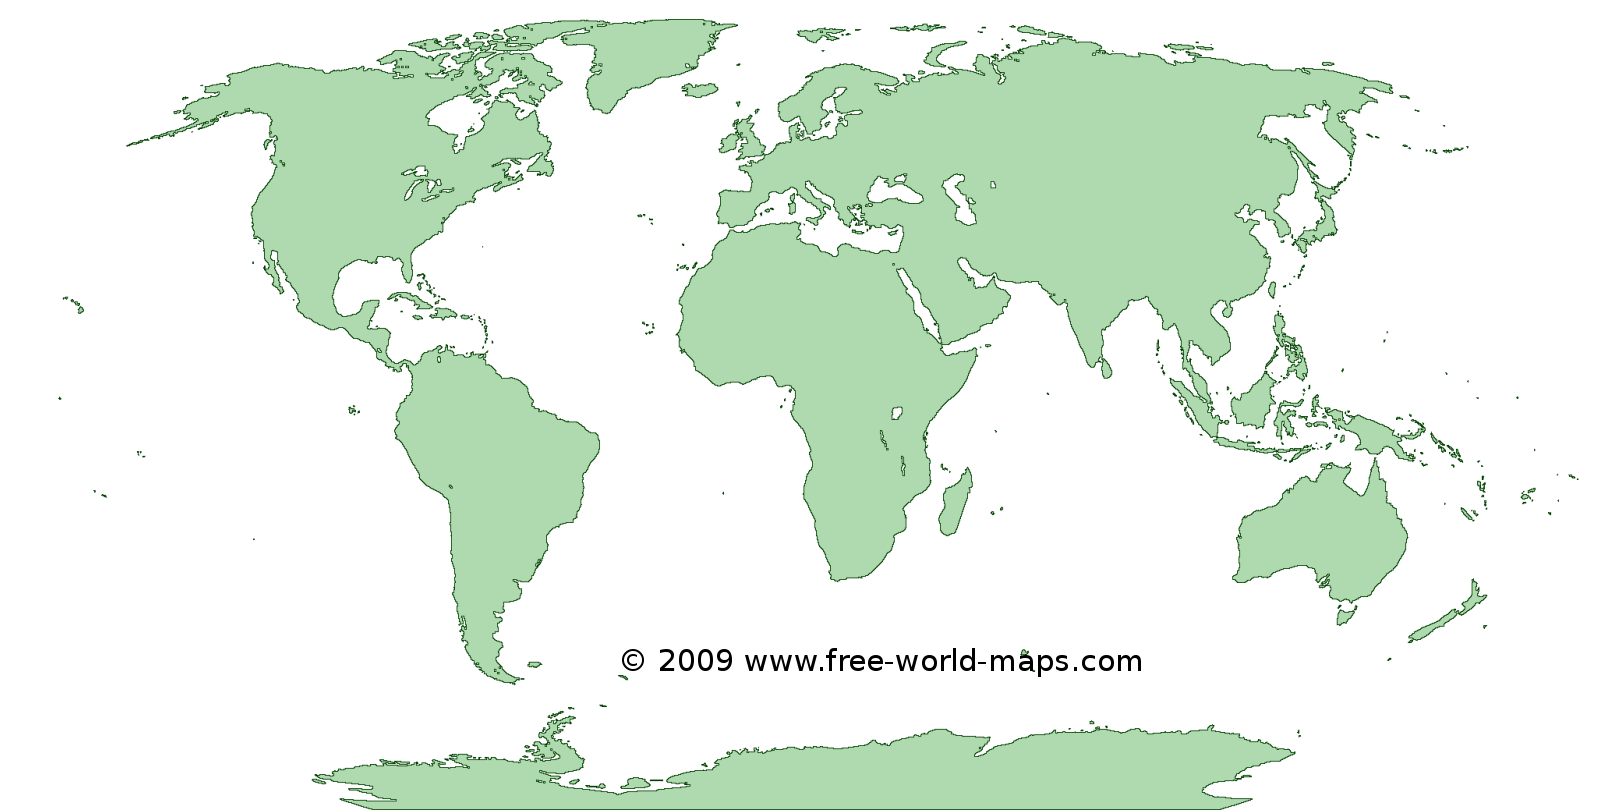 Printable Blank World Maps Free World Maps - Unlabelled map